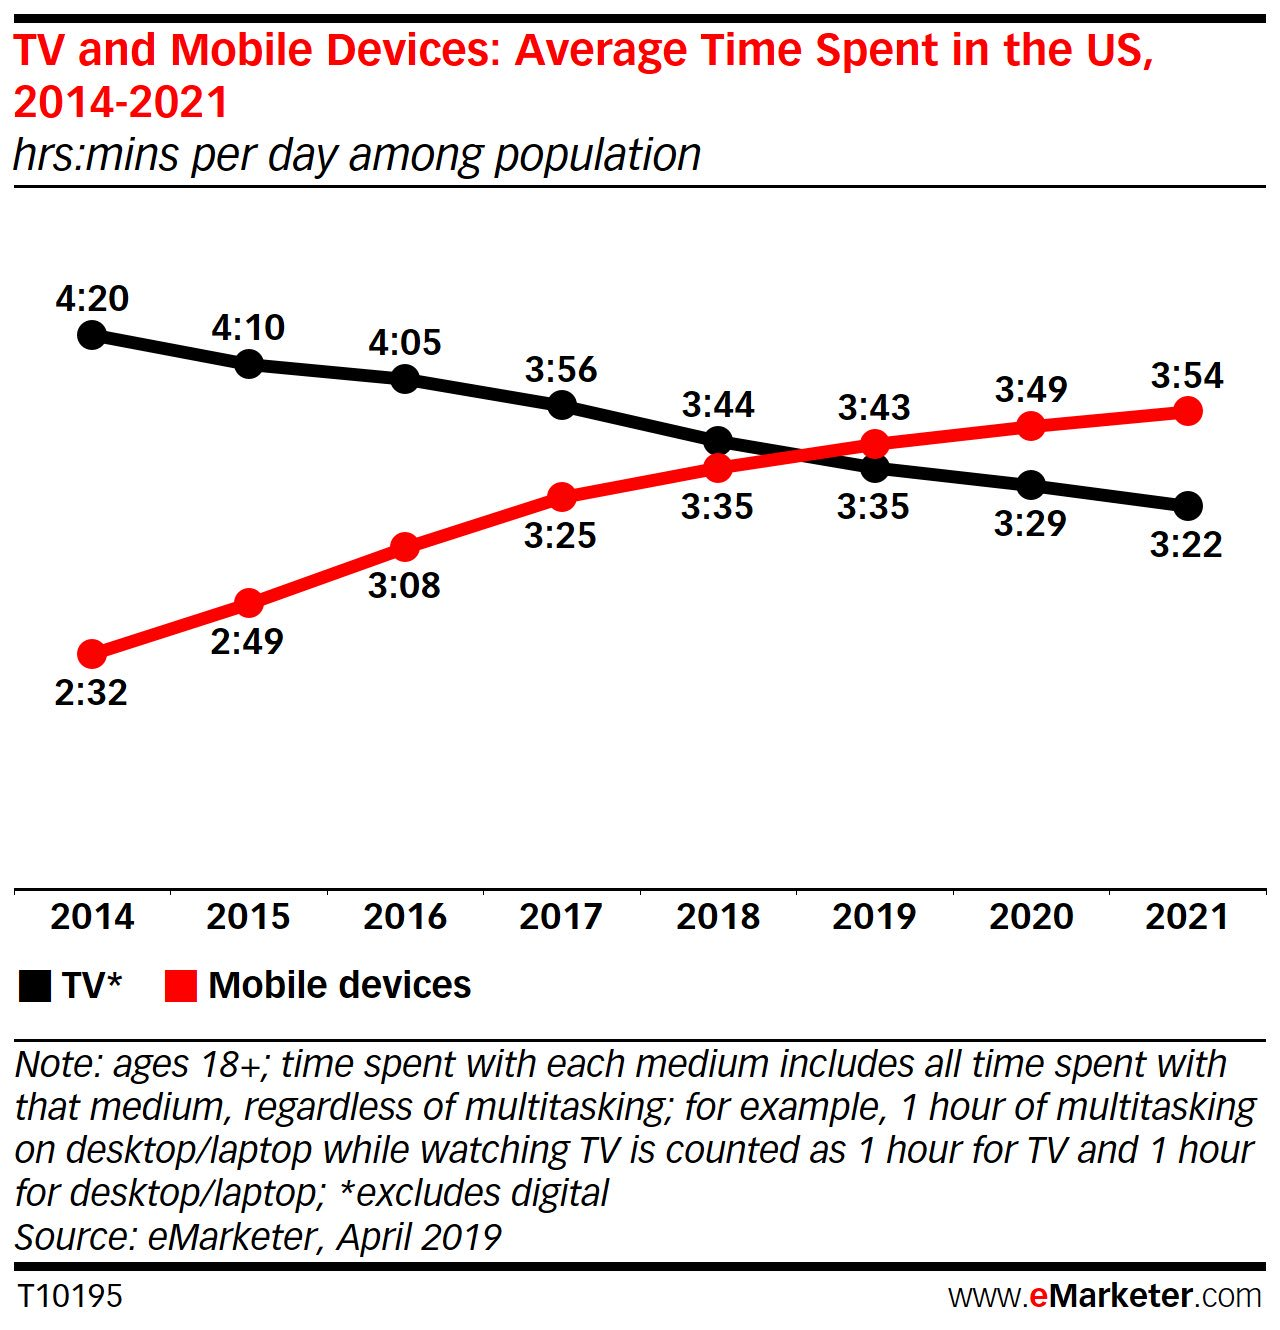 2019 is the crossover year — we now spend more time on mobile devices than watching TV. https://t.co/CaLCsT08Se